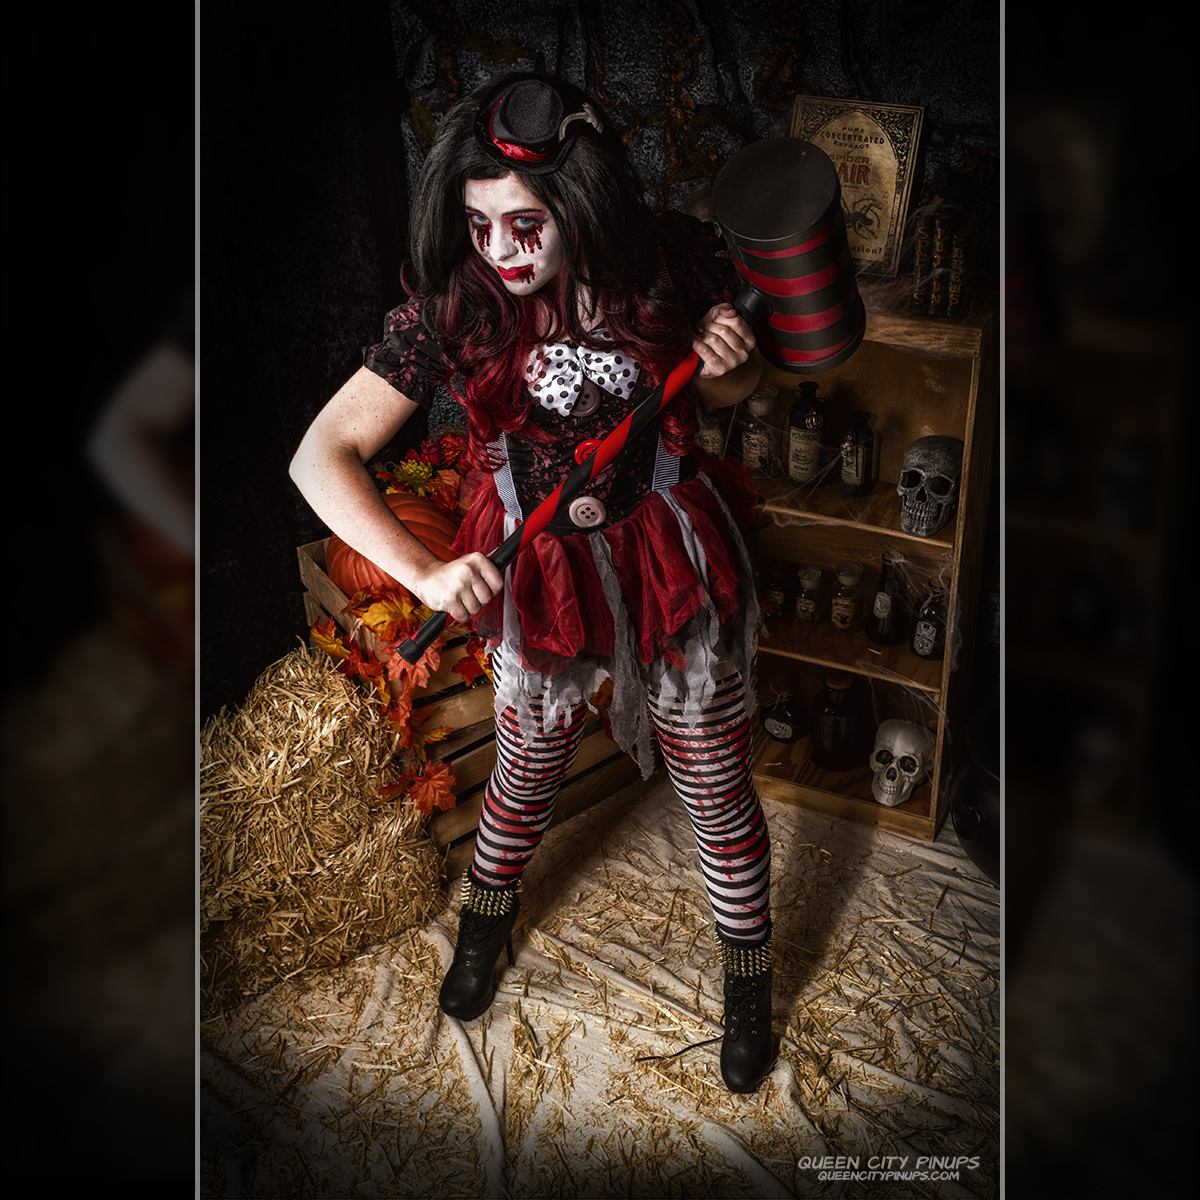 Spooky Clown at Queen City Pinups 2017 Halloween Spooktacular